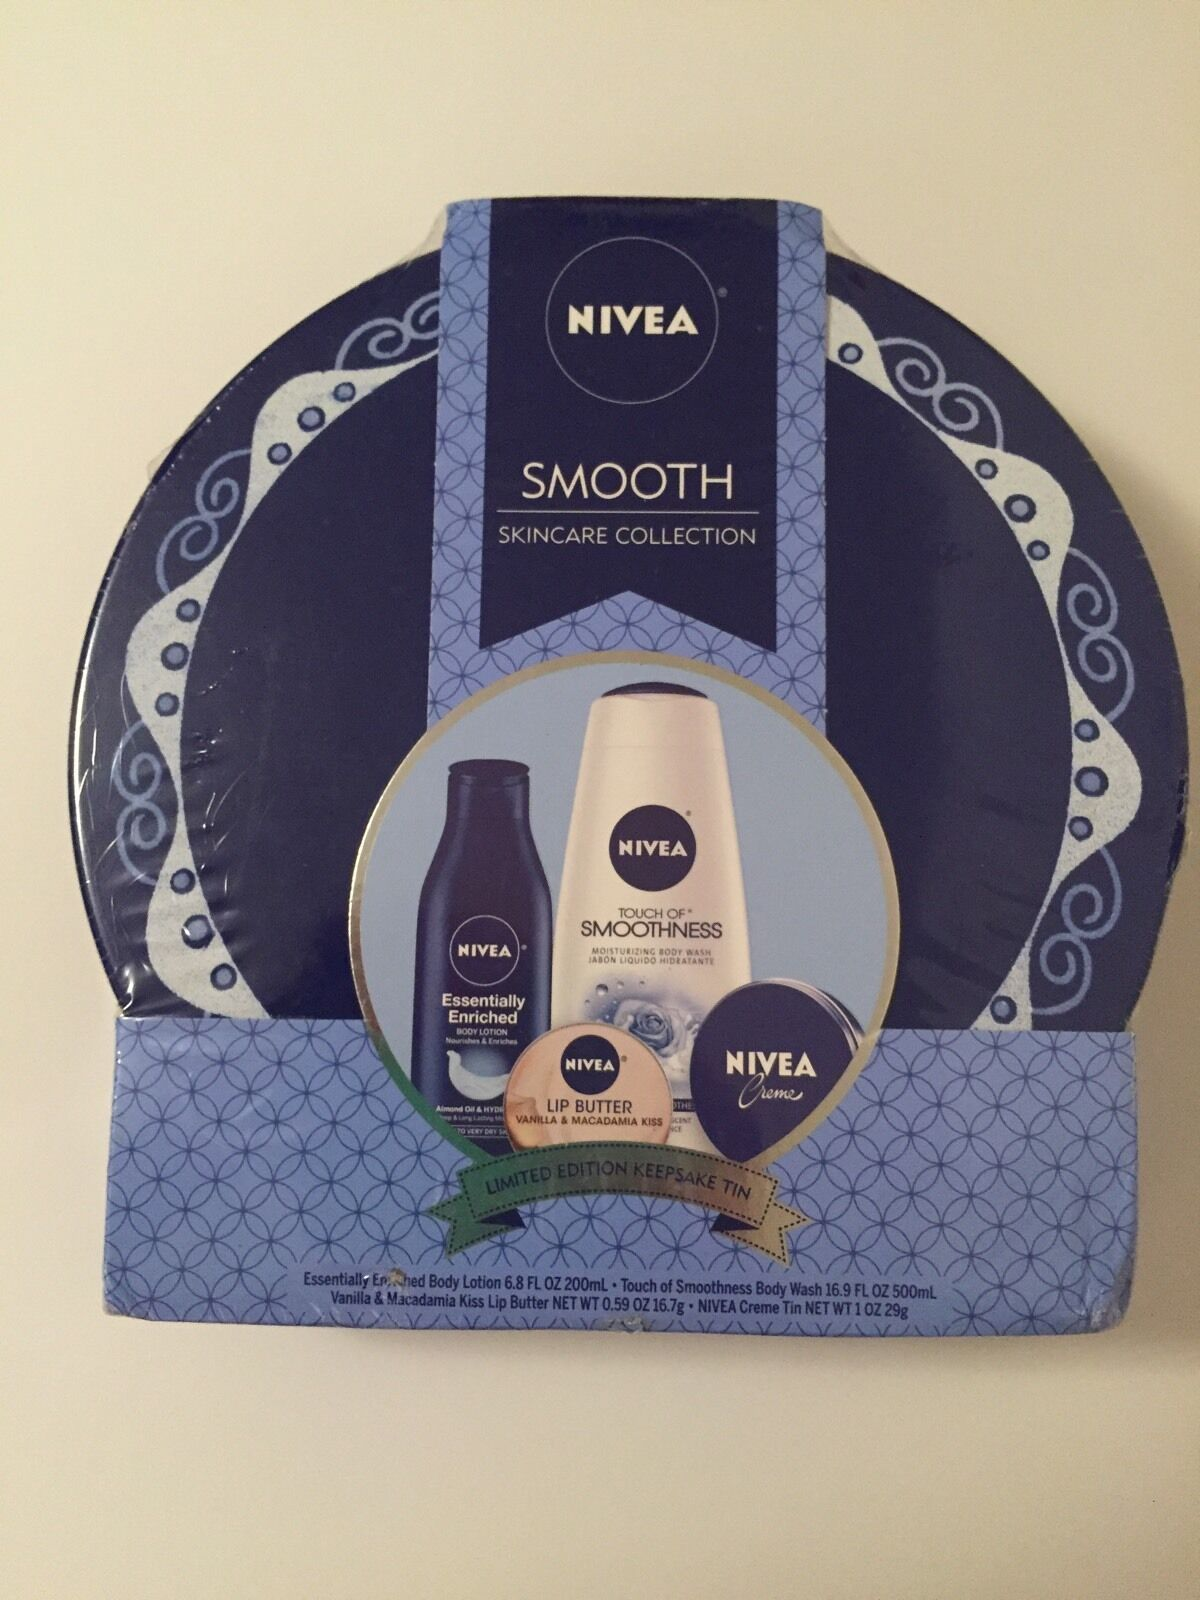 NIVEA Smooth Skincare Collection Gift Set - 4 pc • $11.99